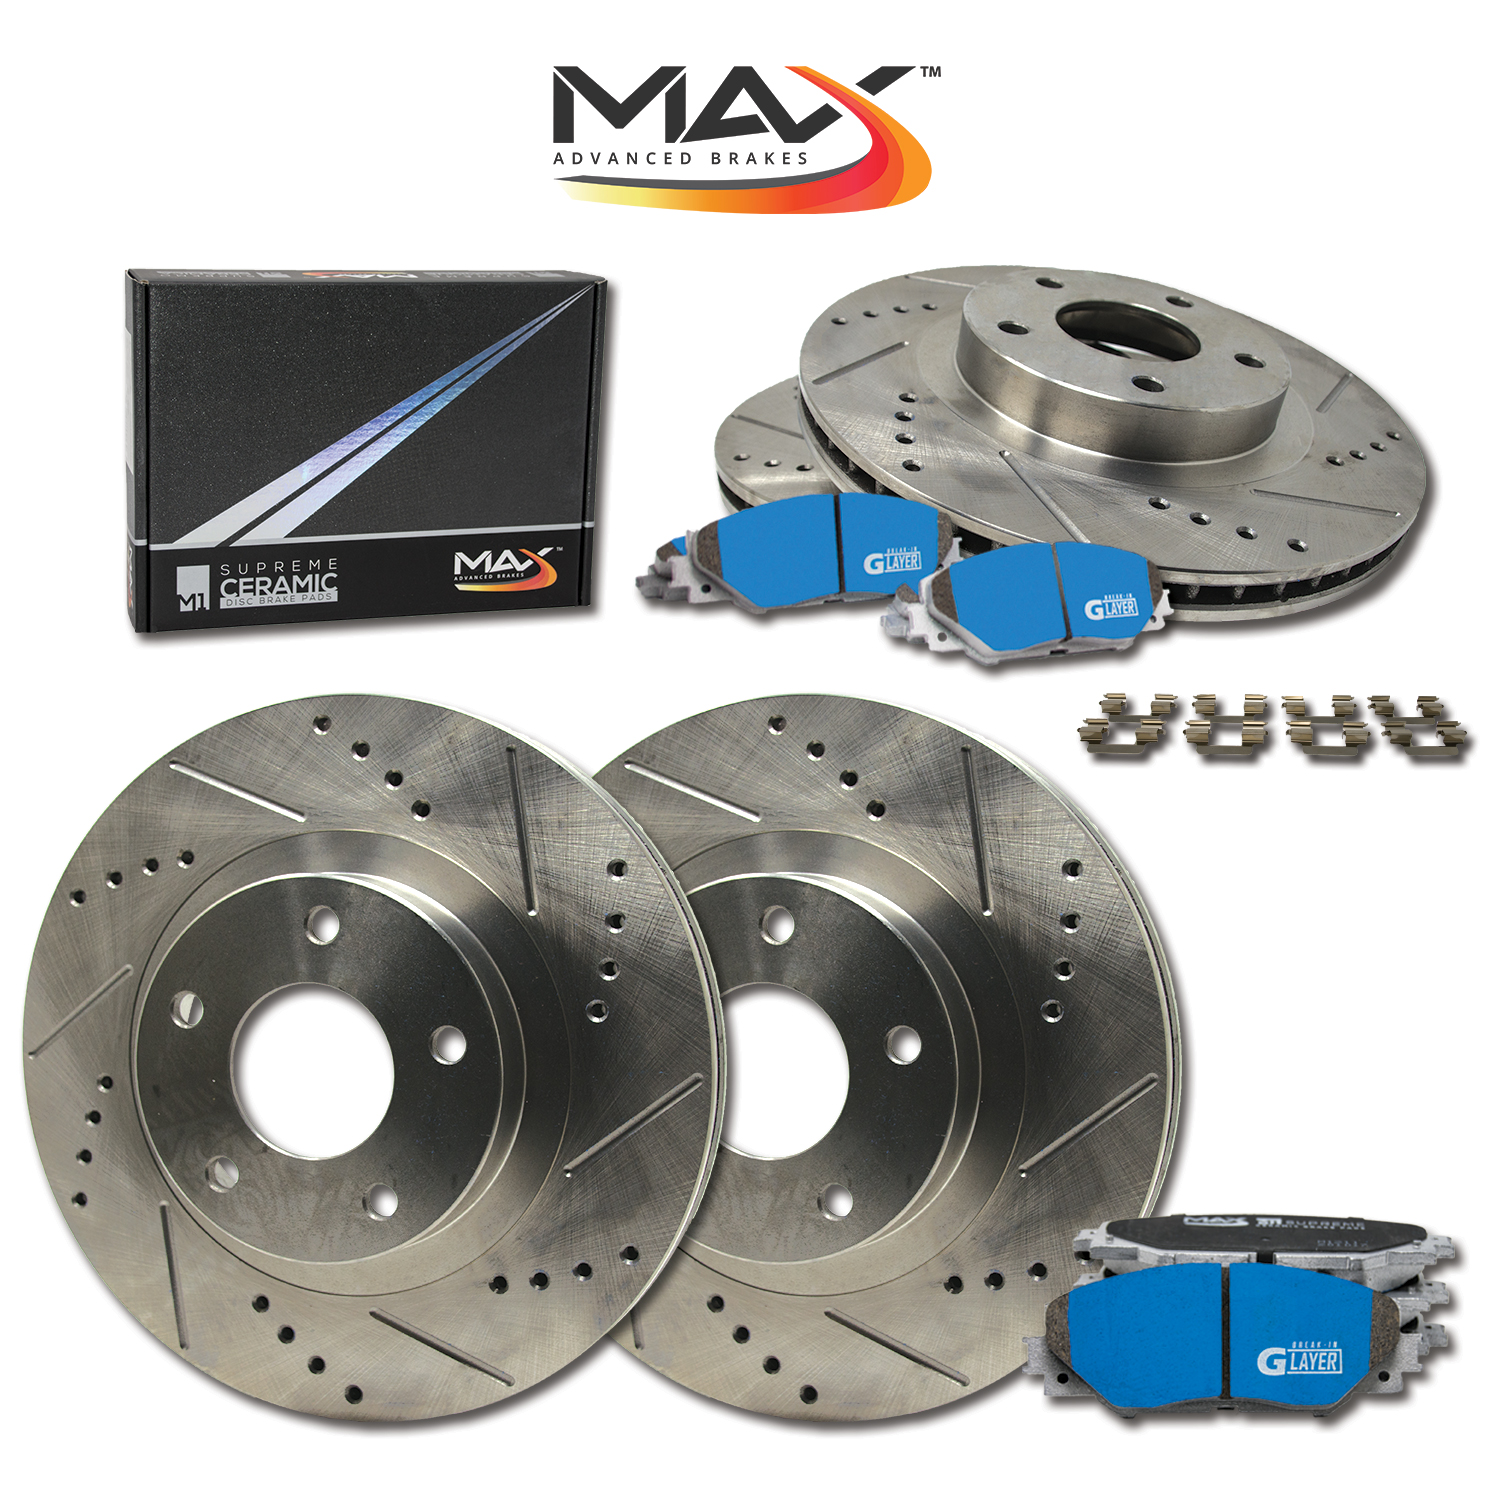 F-R-Rotors-w-M1-Ceramic-Pads-Premium-Brakes-GS300-GS400-IS300